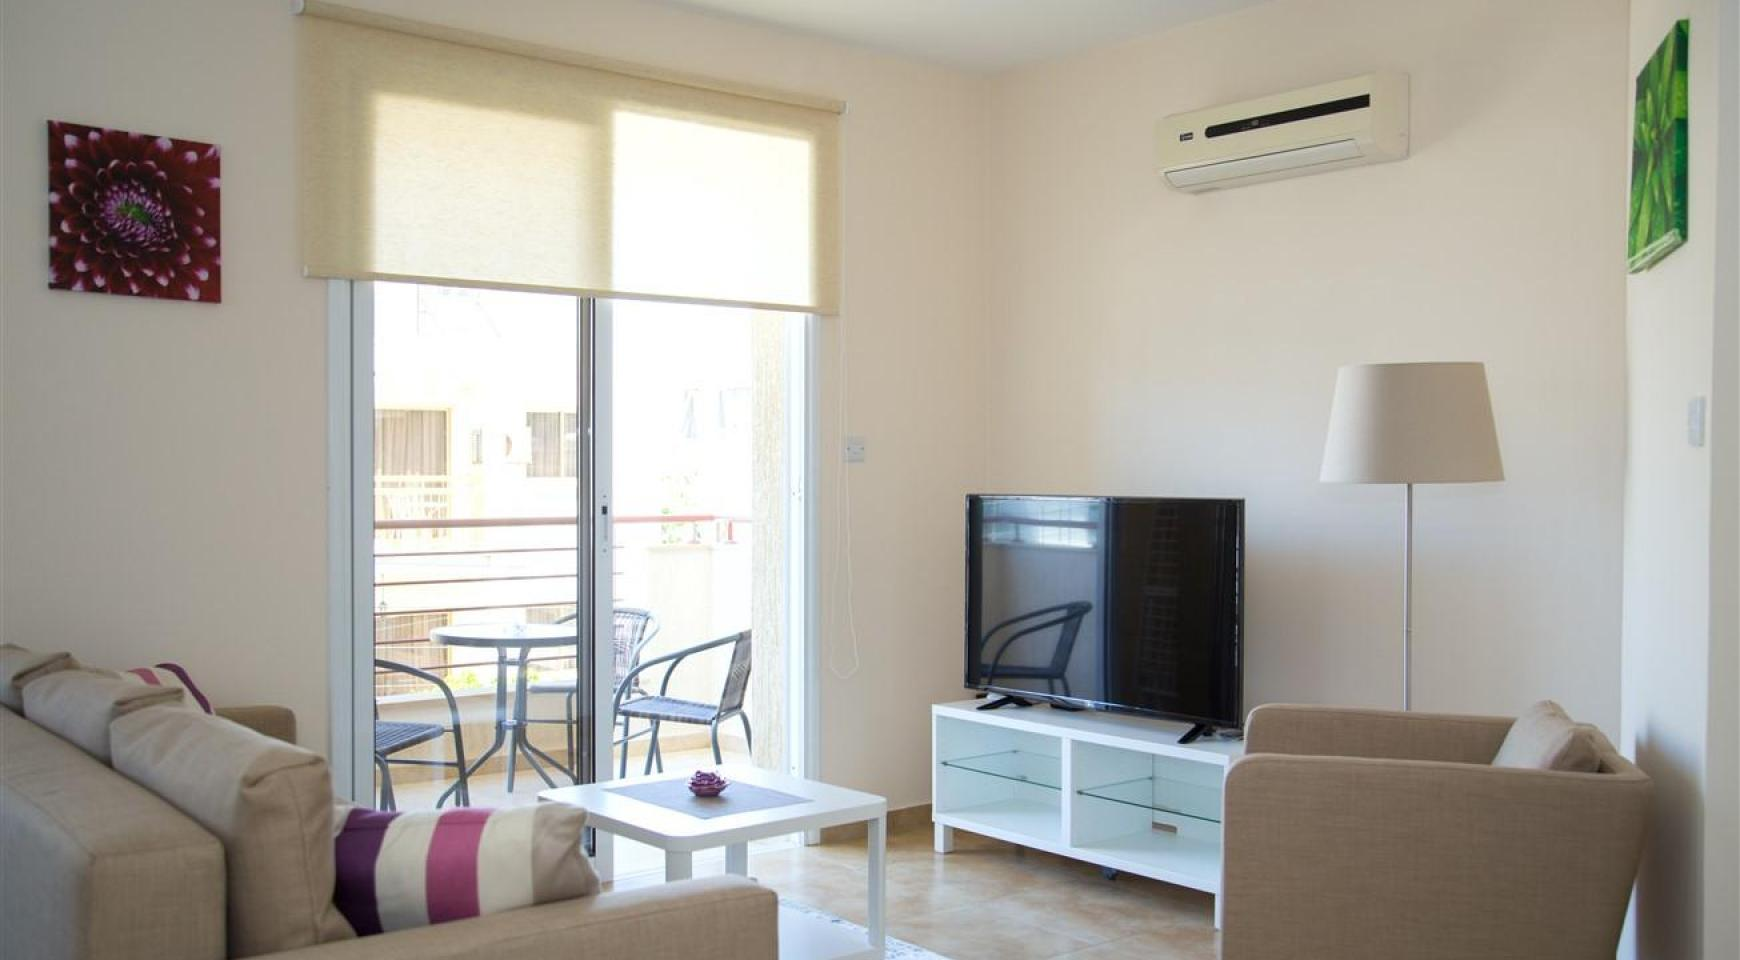 Luxury One Bedroom Apartment Frida 204 in the Tourist Area - 3